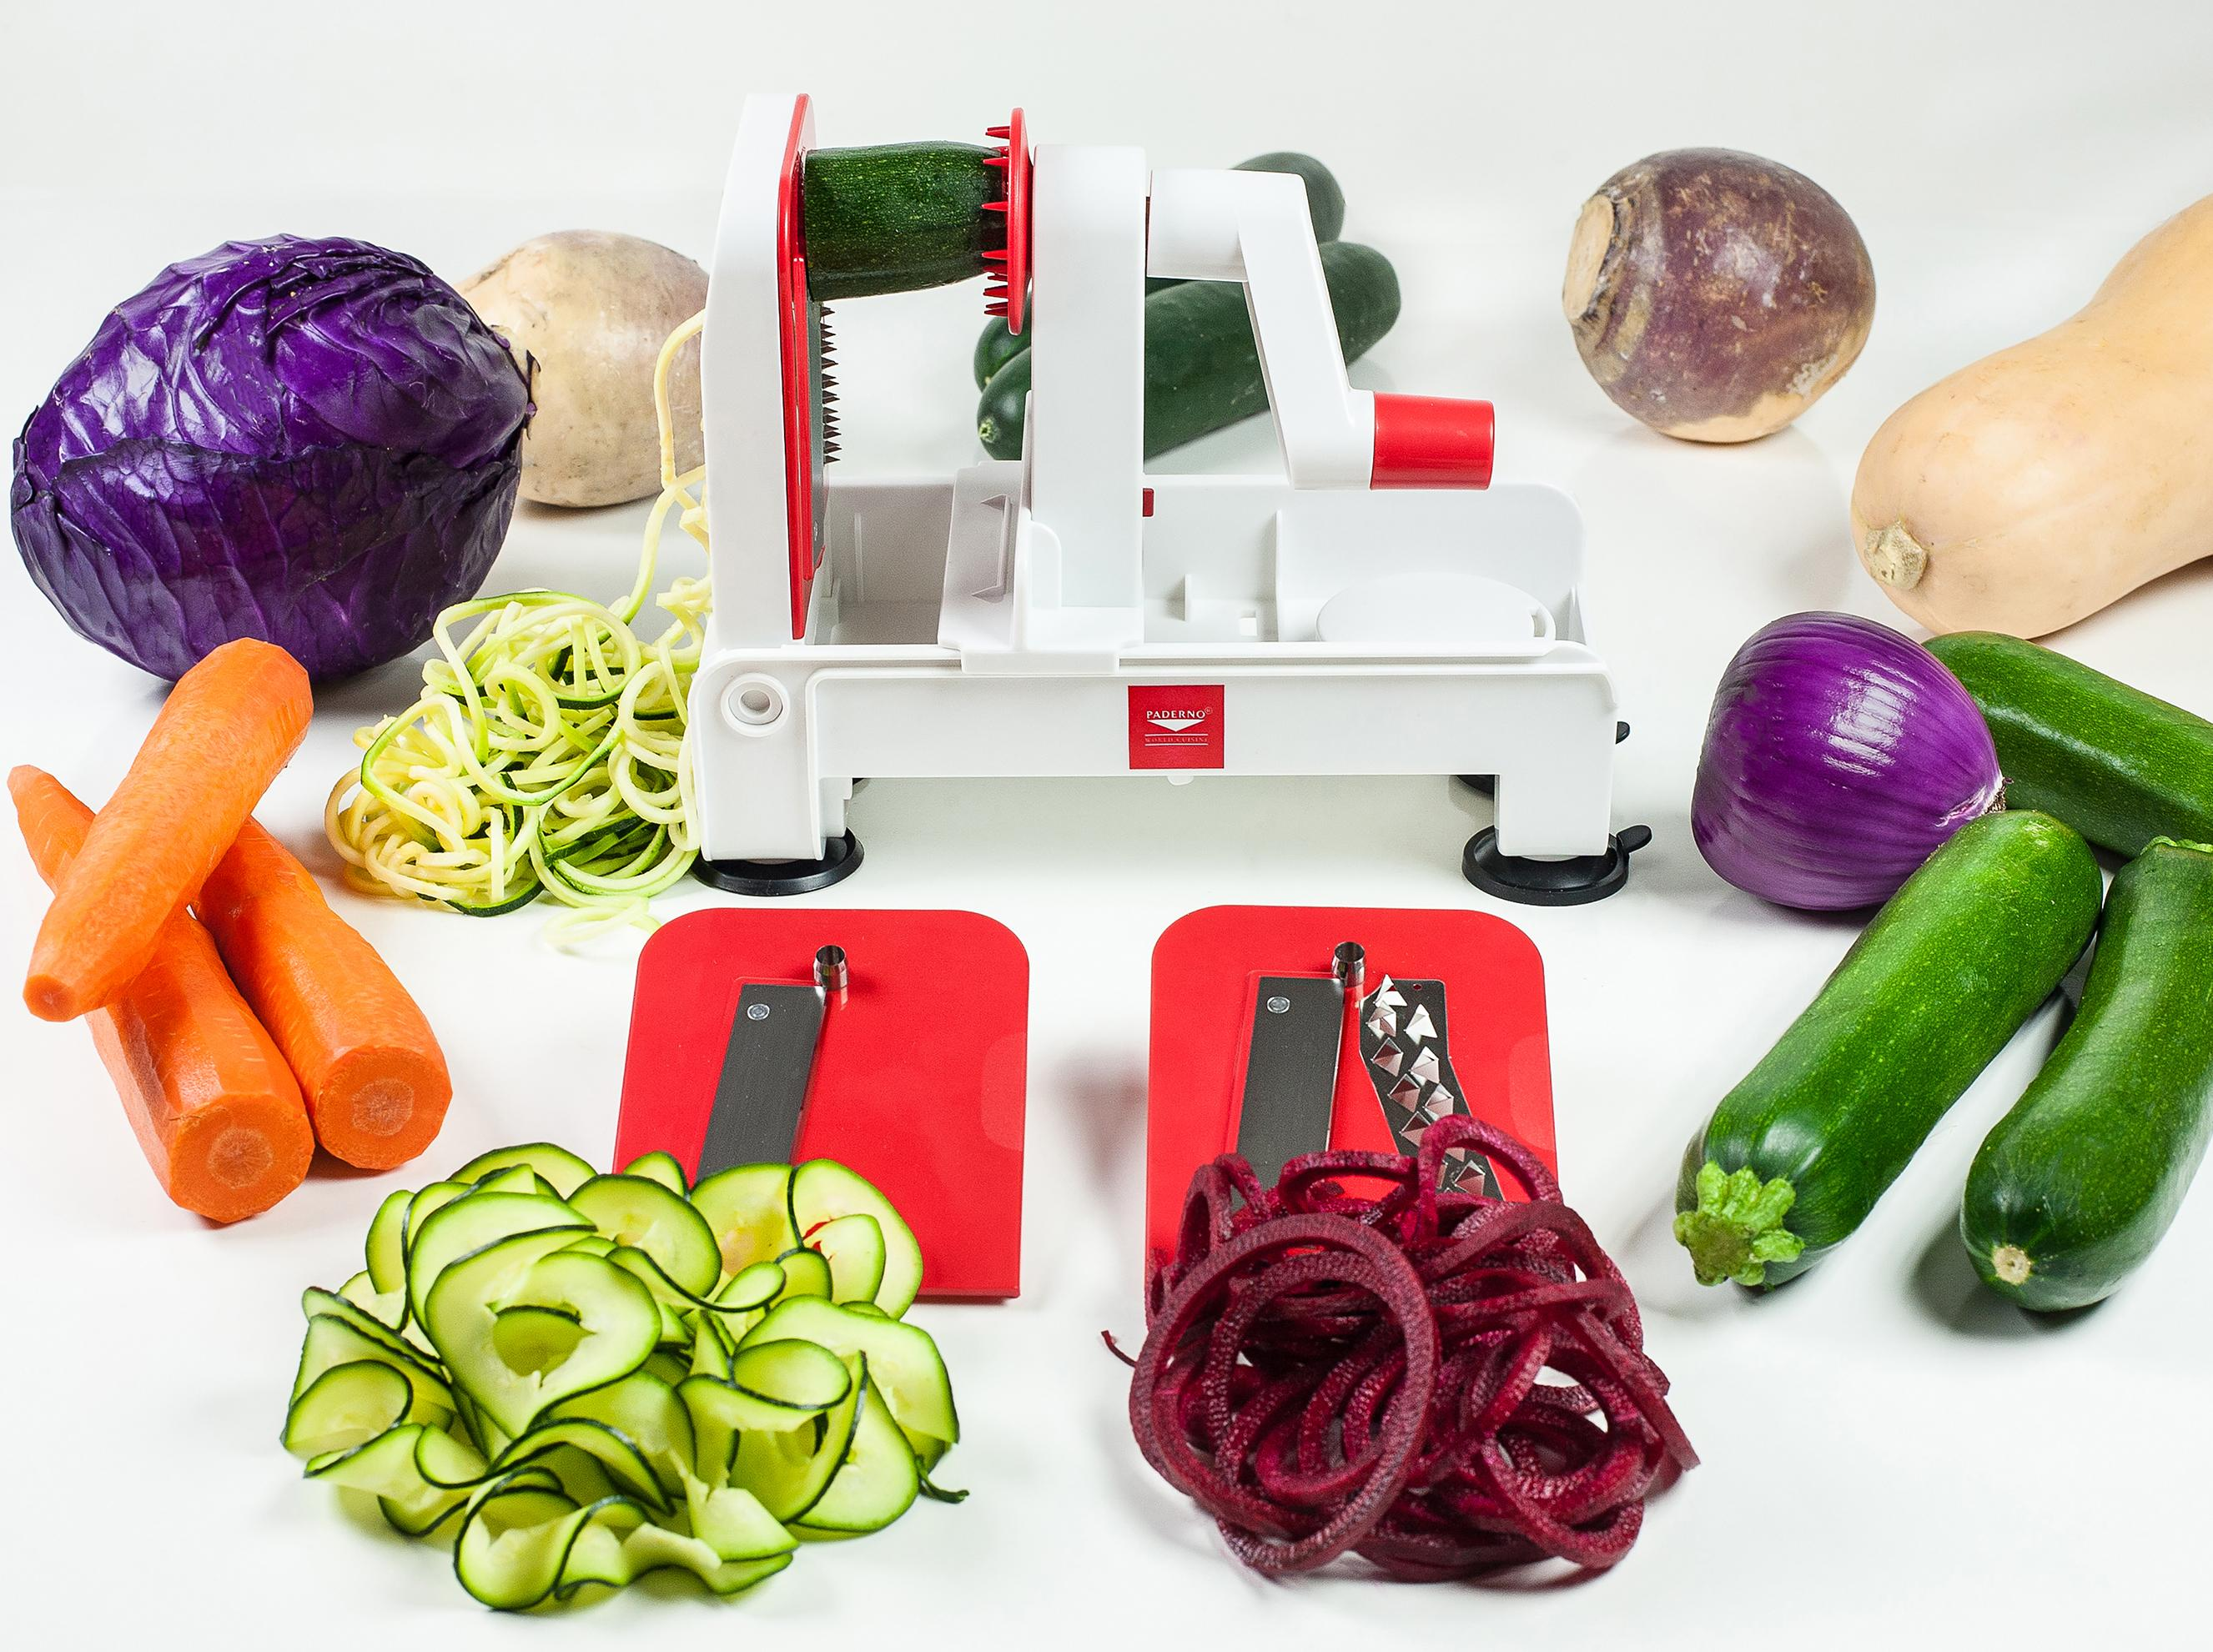 Paderno world cuisine a4982802 folding tri blade - Paderno world cuisine tri blade spiral vegetable slicer ...